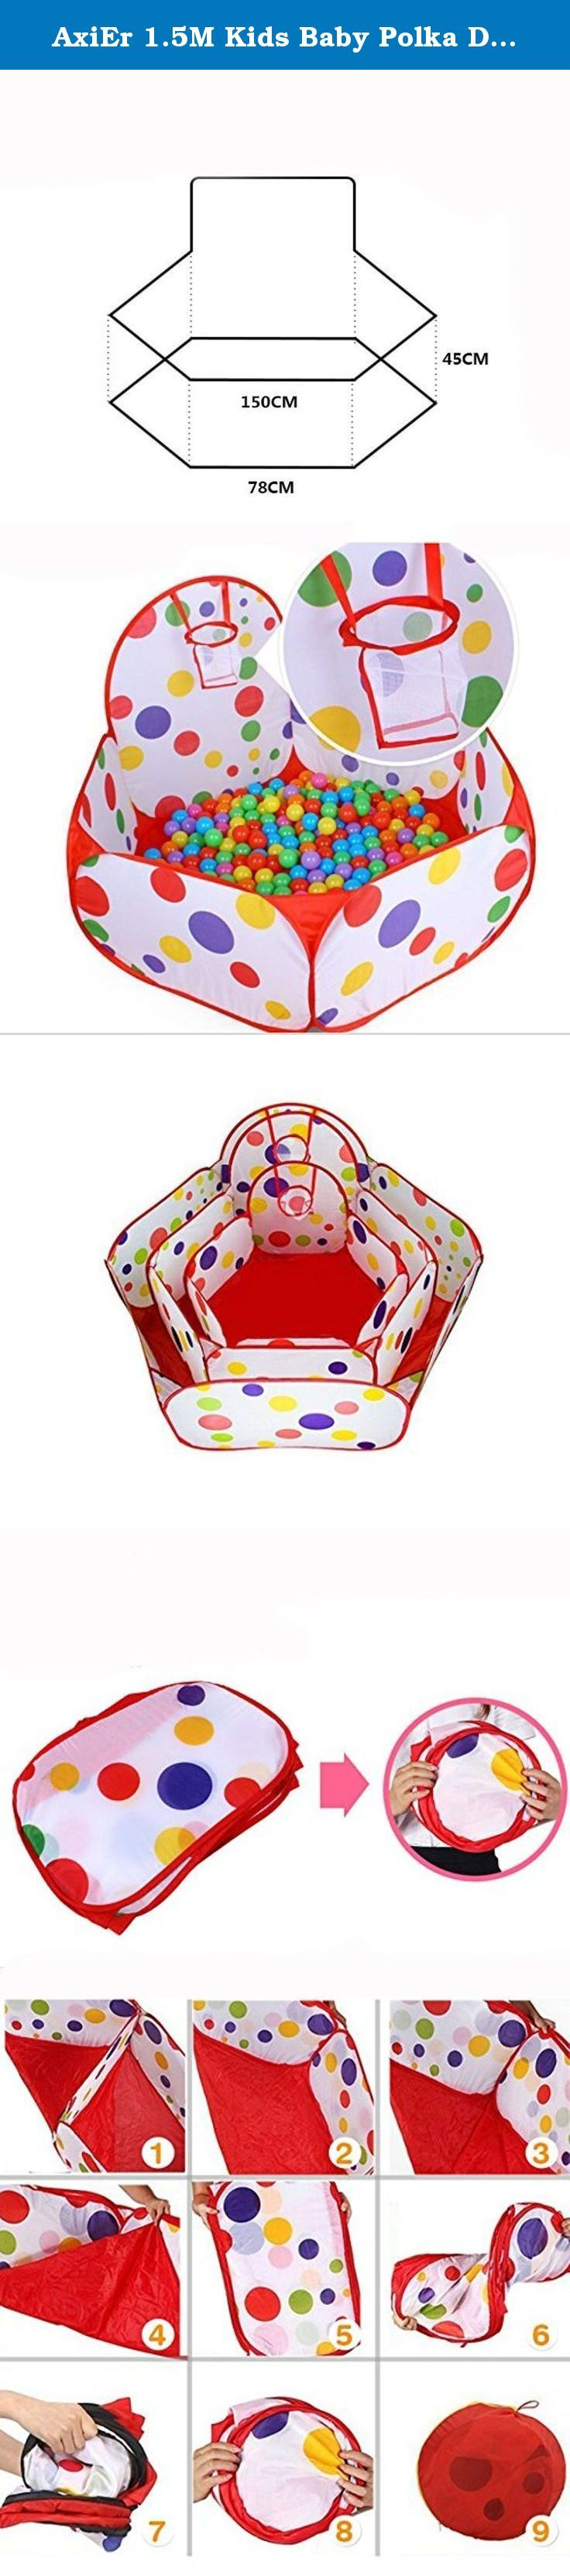 AxiEr 1.5M Kids Baby Polka Dot Cute Ocean Ball Pool Outdoor Indoor Game Play Toy Tent Hut Easy Fold Ball Pit Tent with Basketball Hoop. Playtime is a Pleasure in this Polka Dot Kids's Playpen Give your little one a place to play in peace with this adorable and ultra-convenient little polka dot playpen. Its twist-to-open technology makes it a breeze to set it up and break it down in just a few seconds without any frustrating ties or snaps to have to worry about. Meanwhile, its cheery…